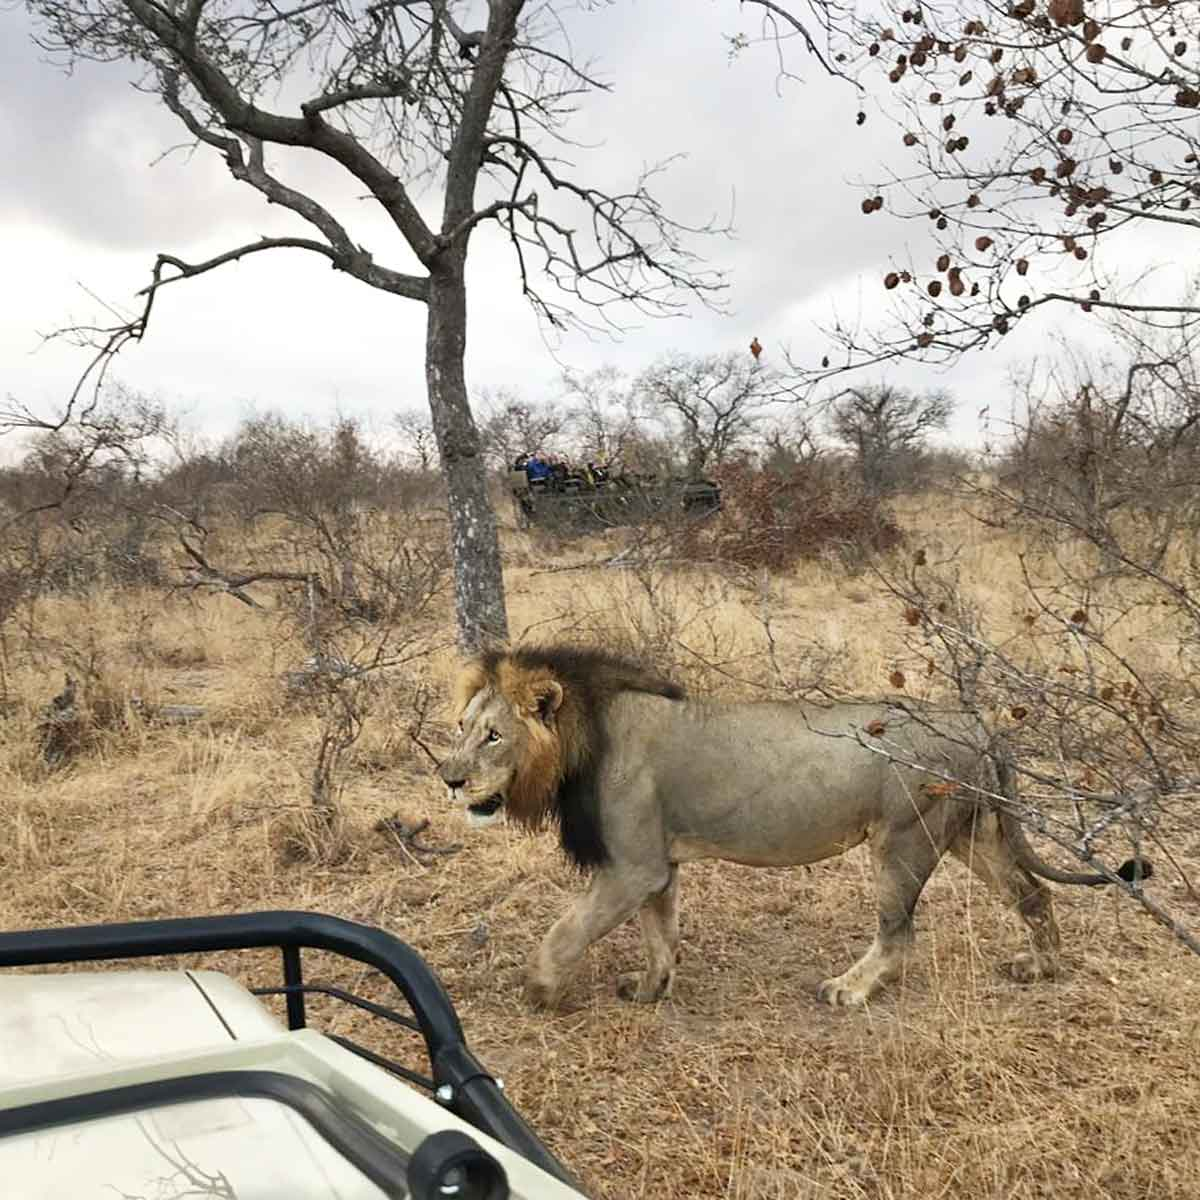 Male Lions in the Timbavati